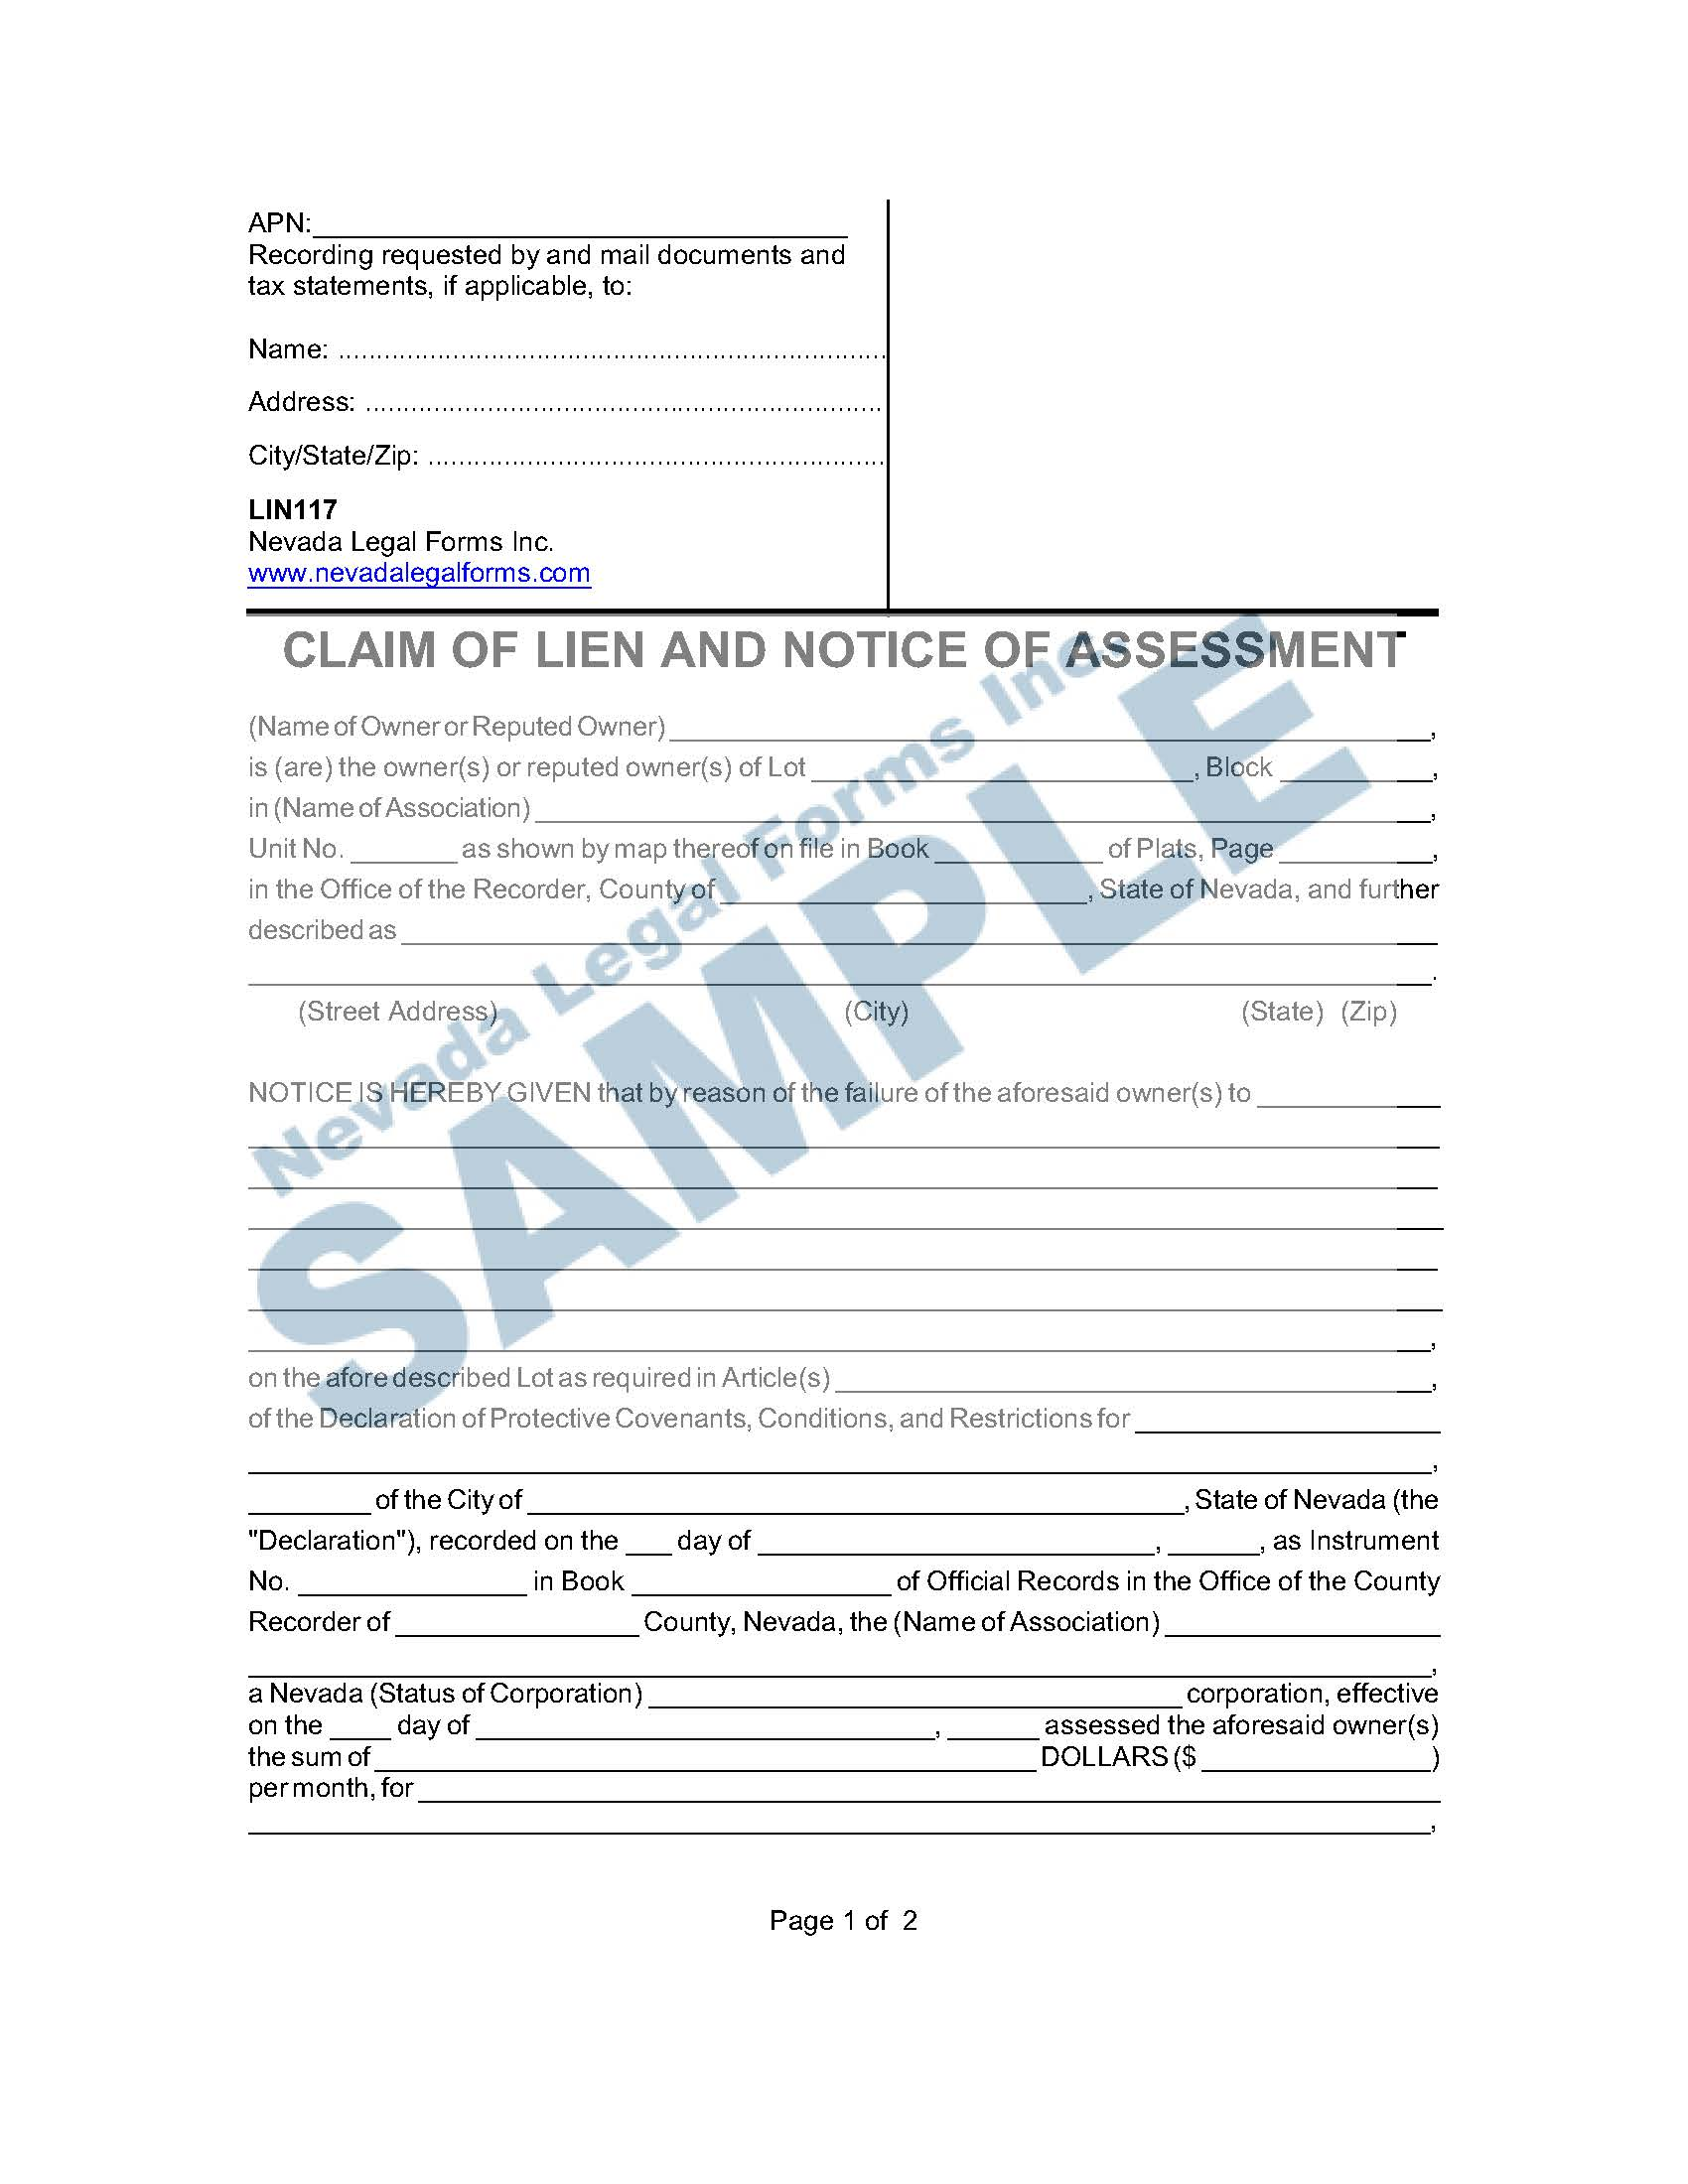 Claim Of Lien And Notice Of Assessment